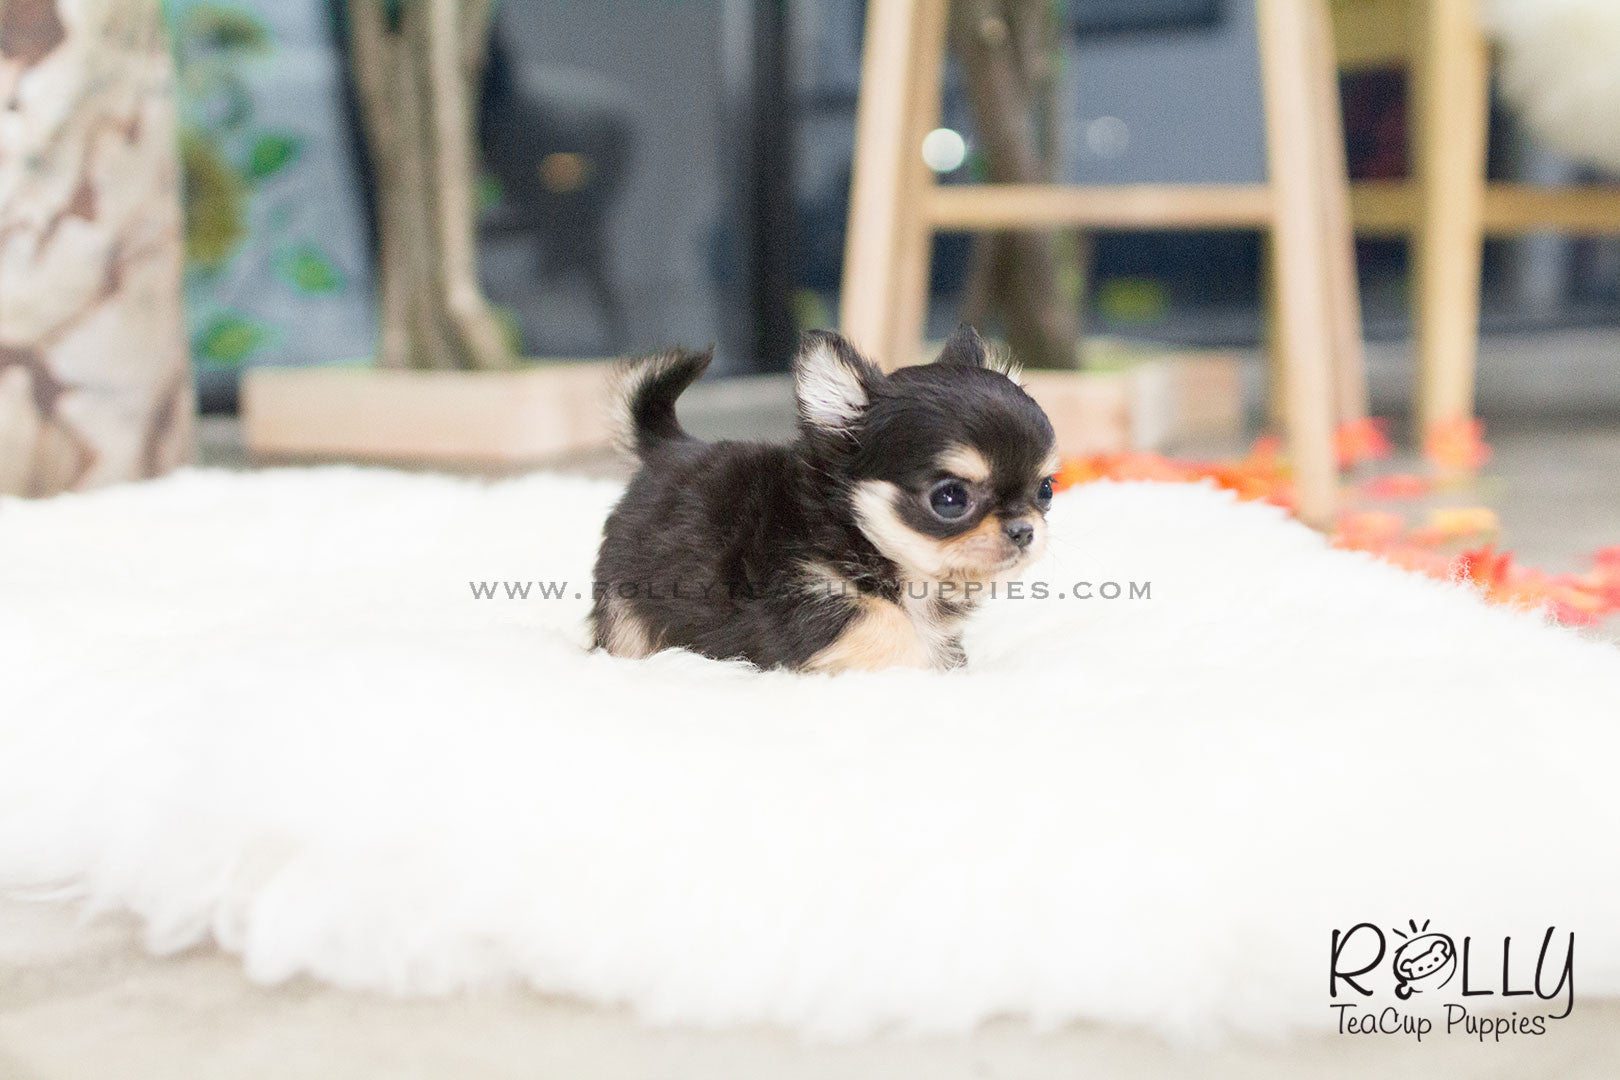 Tequila Long Hair Chihuahua M Rolly Teacup Puppies